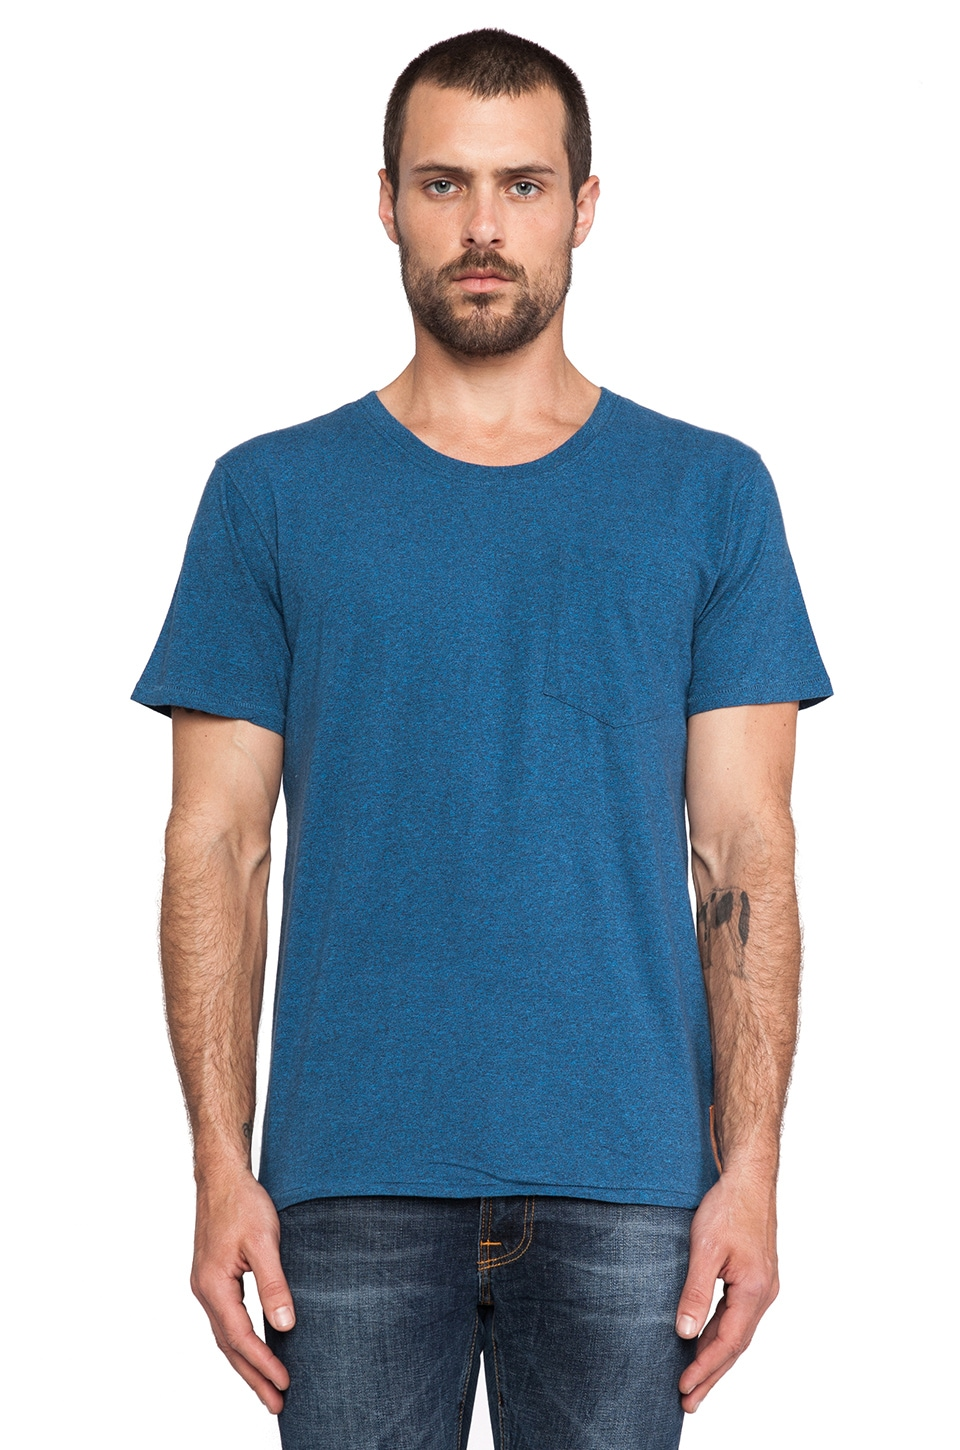 Nudie Jeans Roundneck Pocket Tee in Bluemelange